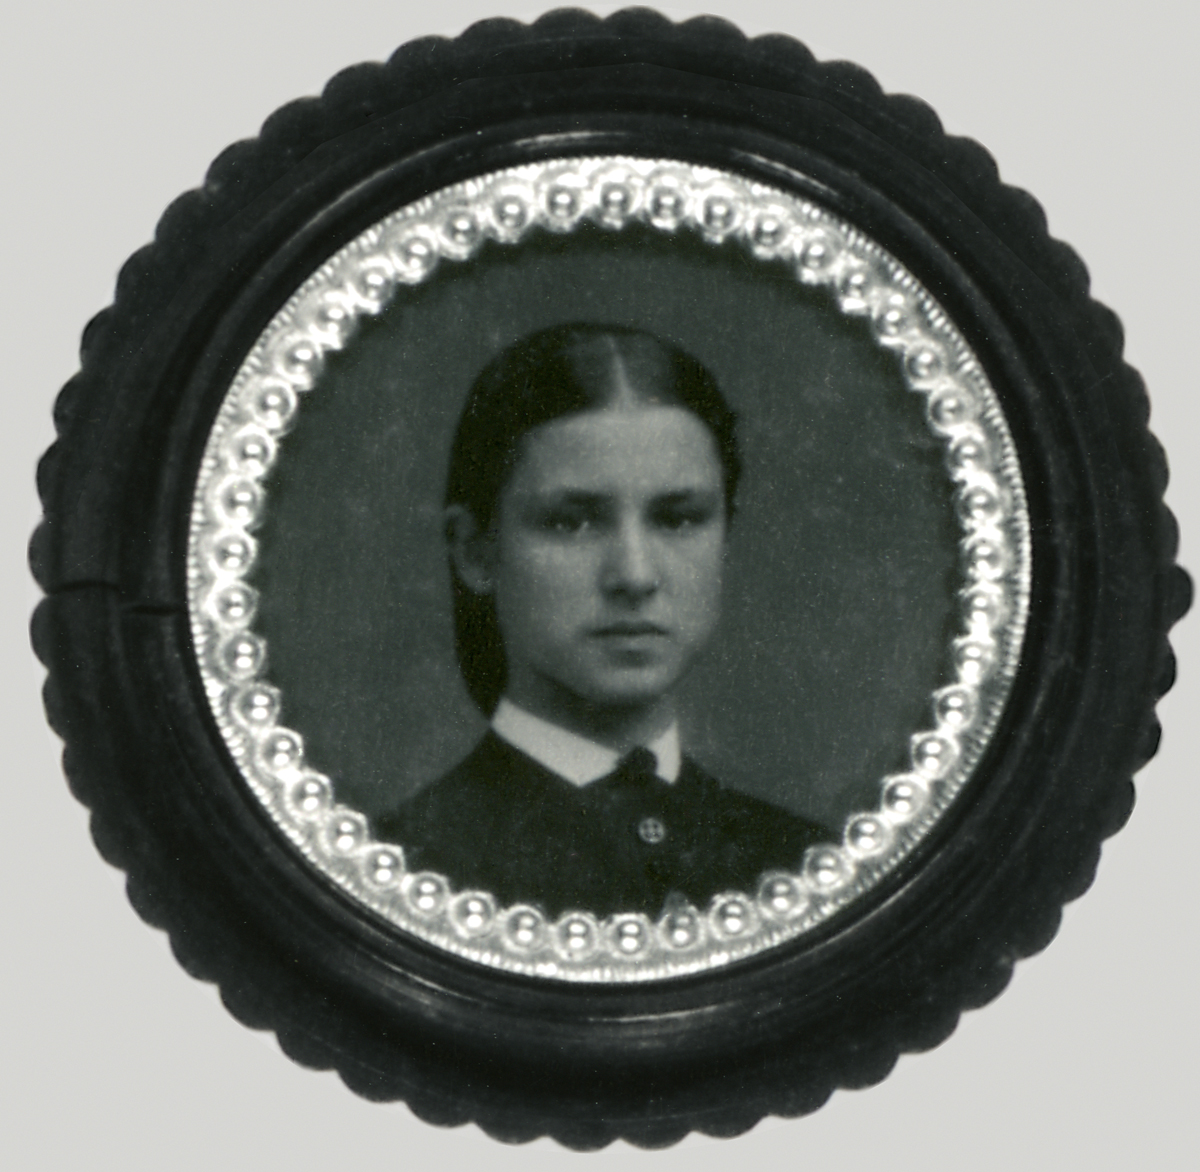 Tintype of Anne E. Smedley Carried by her Husband, Charles F. Hallock During the Civil War